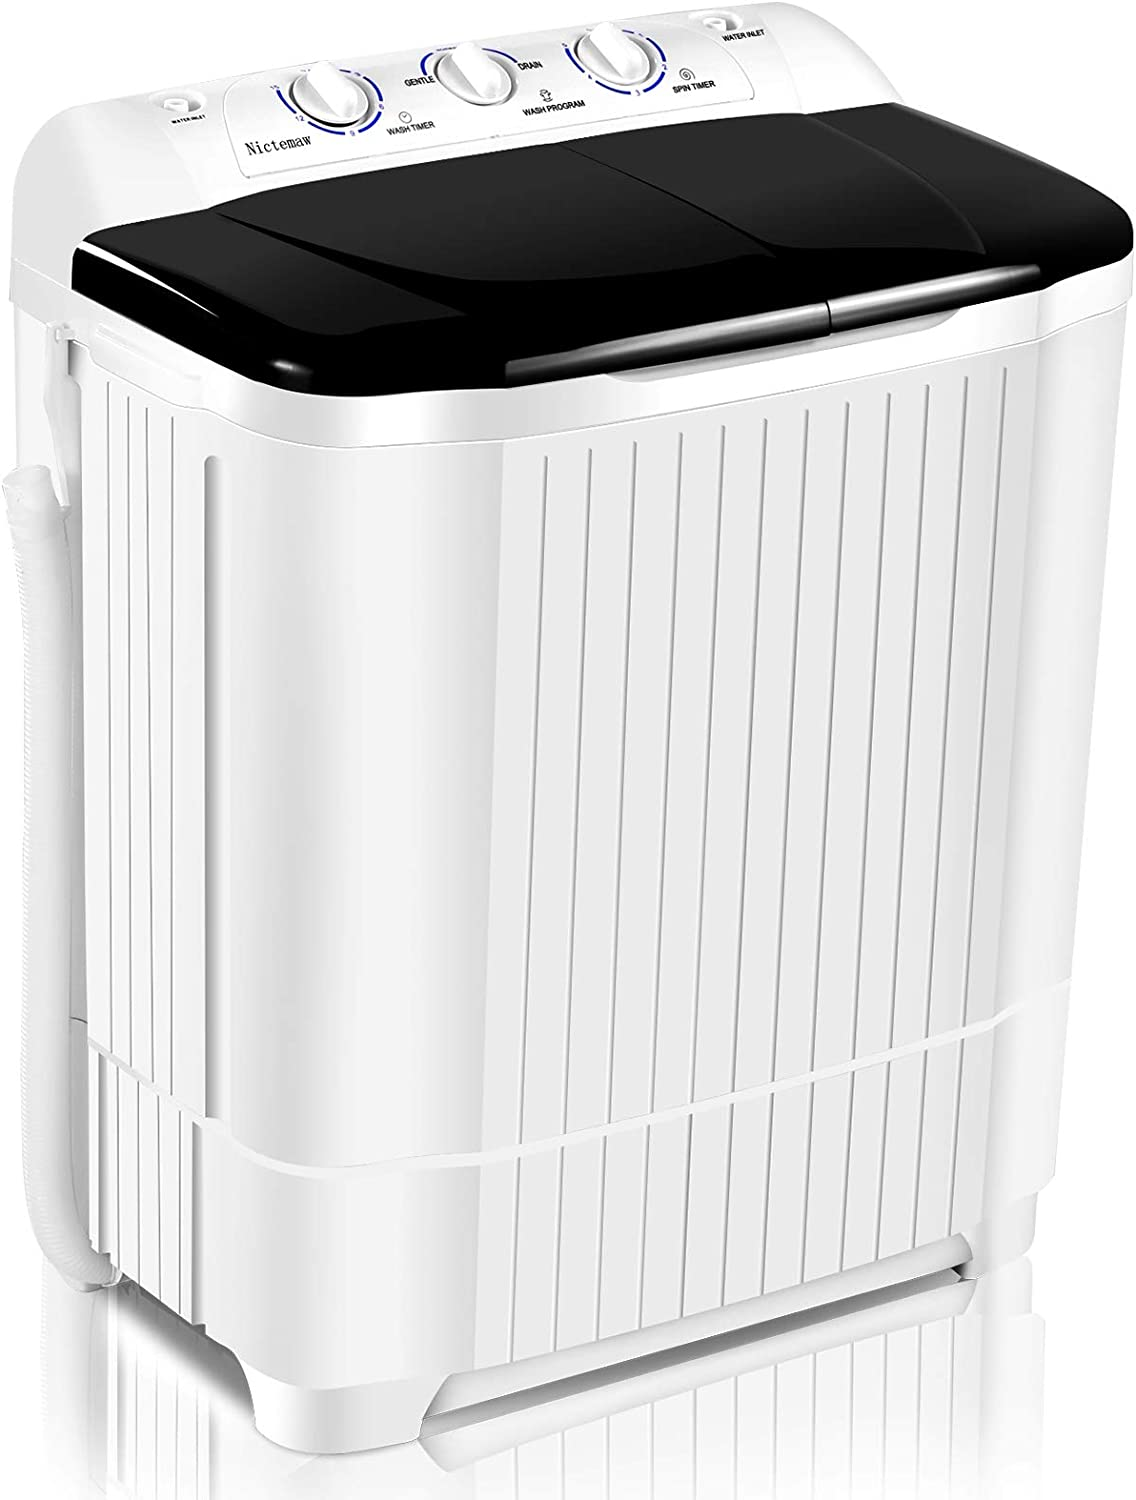 Nictemaw Compact Twin Tub Portable Mini Washing Machine, Washer(13.2lbs)&Spiner(8lbs) Semi-Automatic with Time Control Function for Bathroom,Apartments, Dorms, RV Camping (Black)